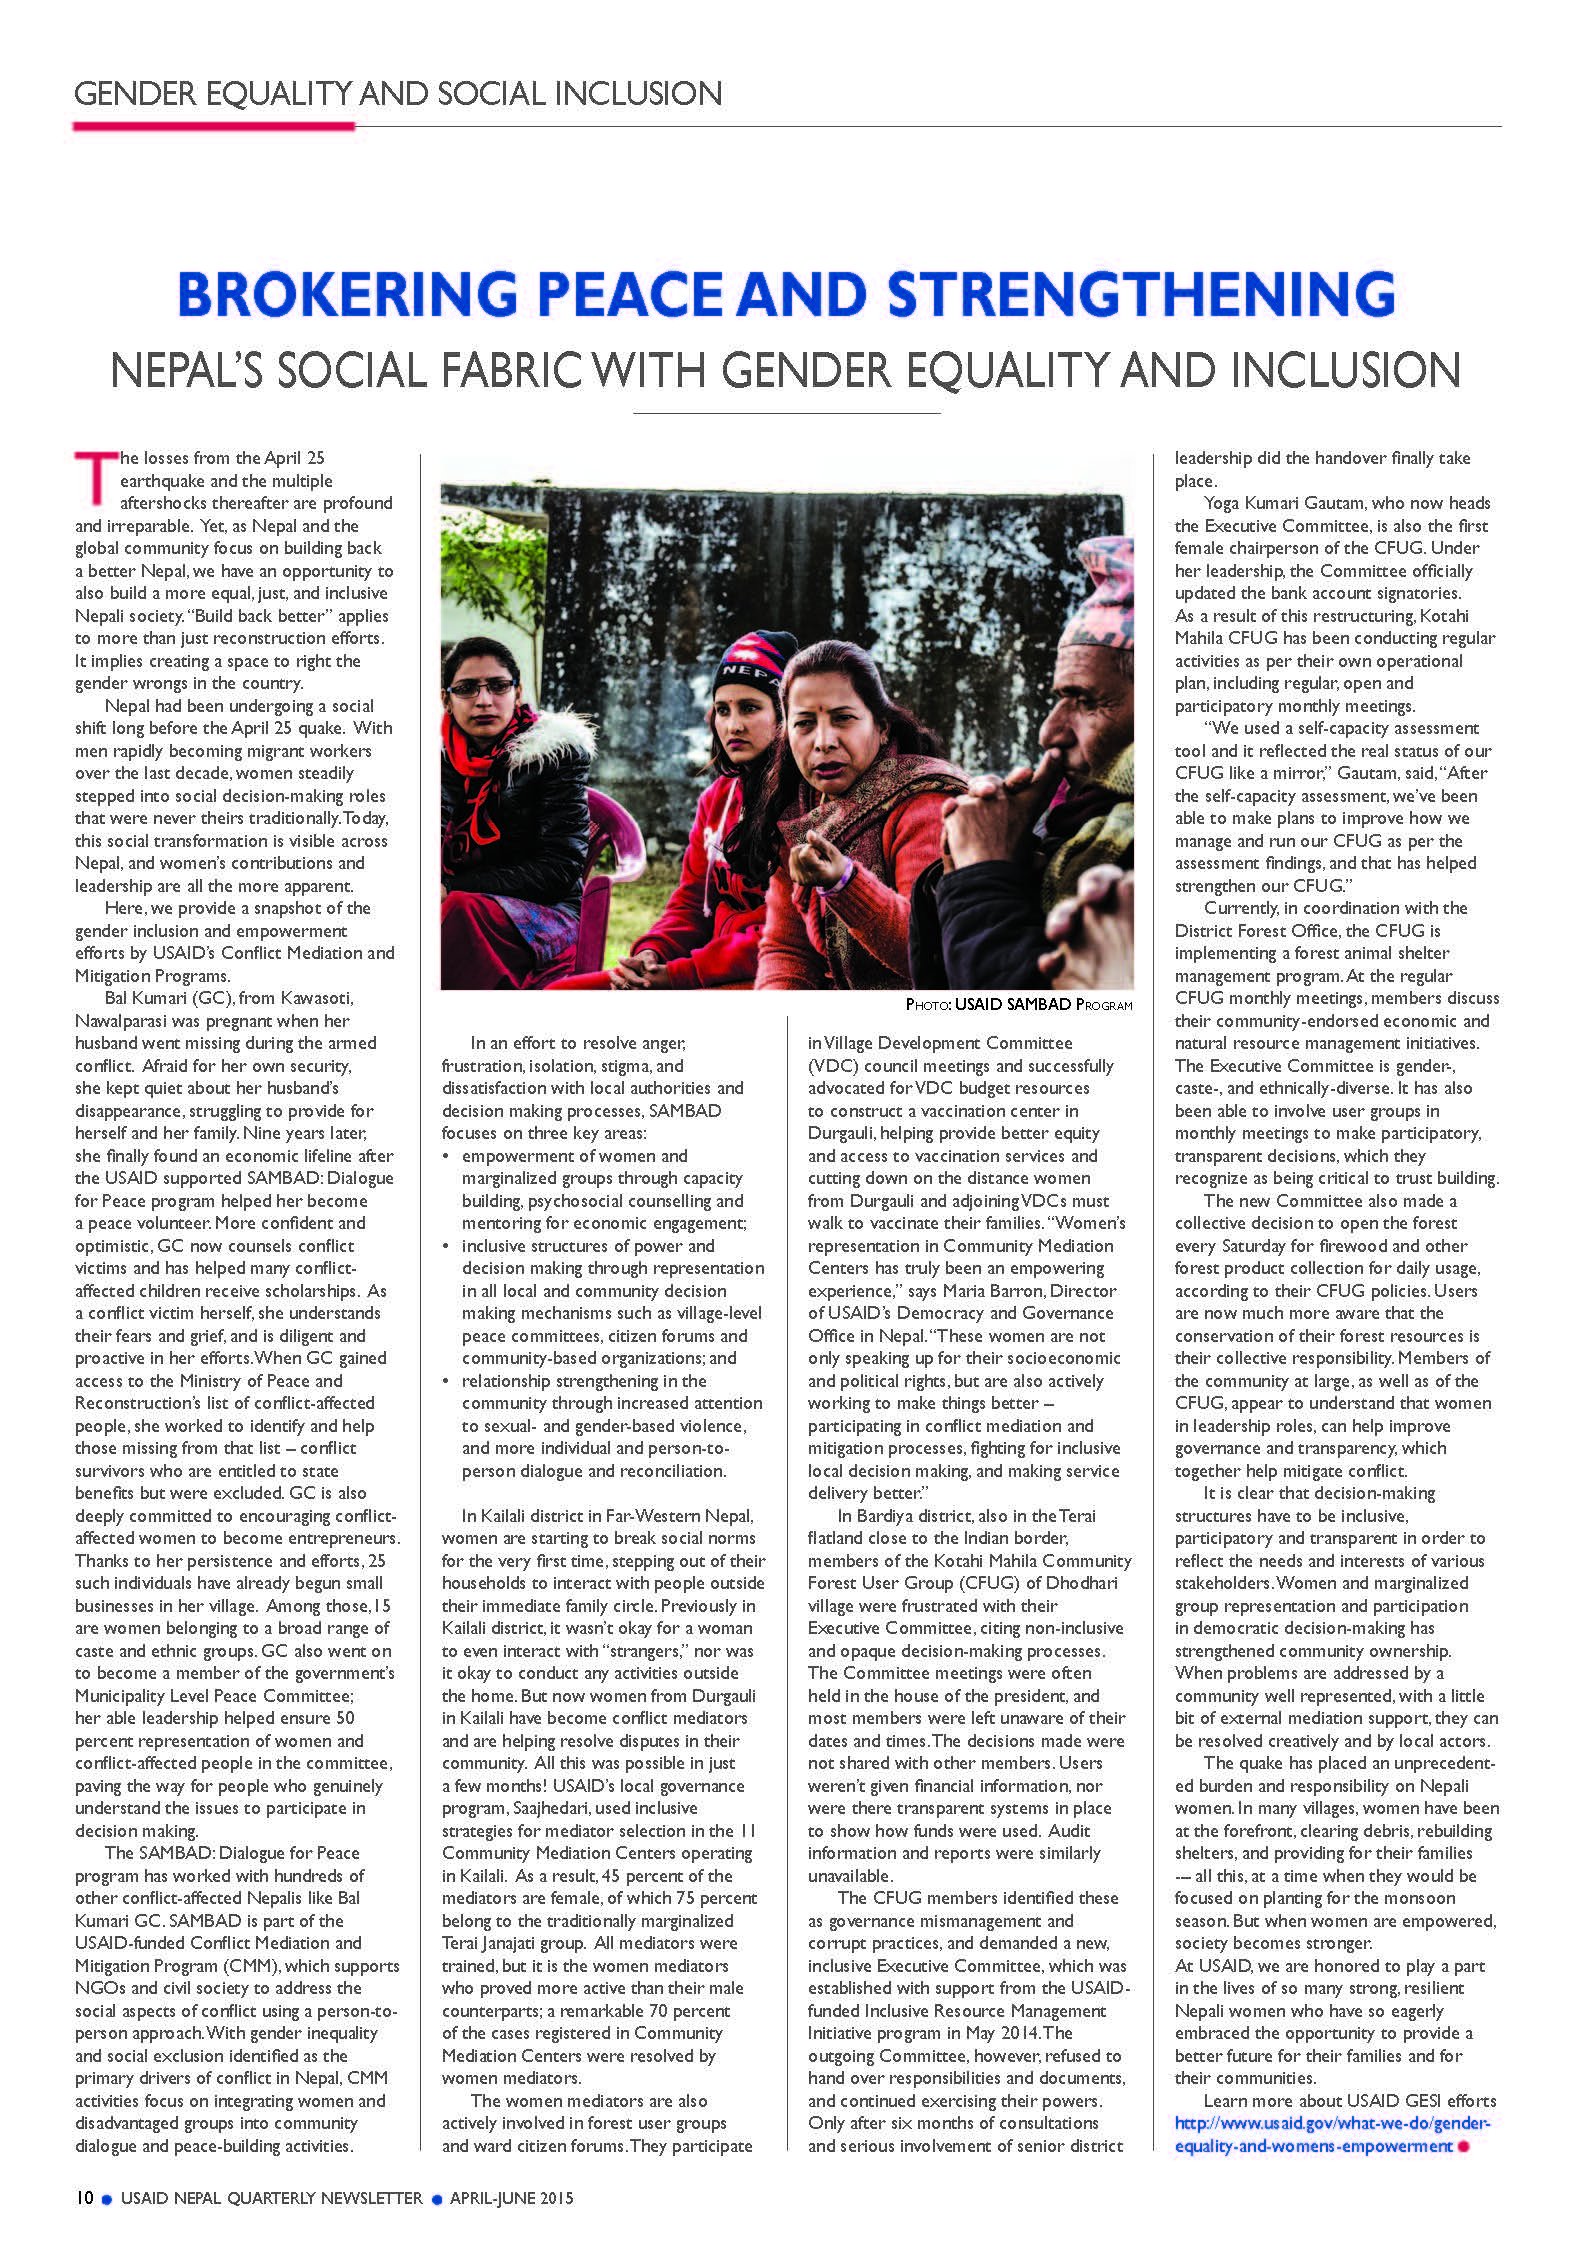 Brokering Peace and Strengthening Nepal's Social Fabric | U S